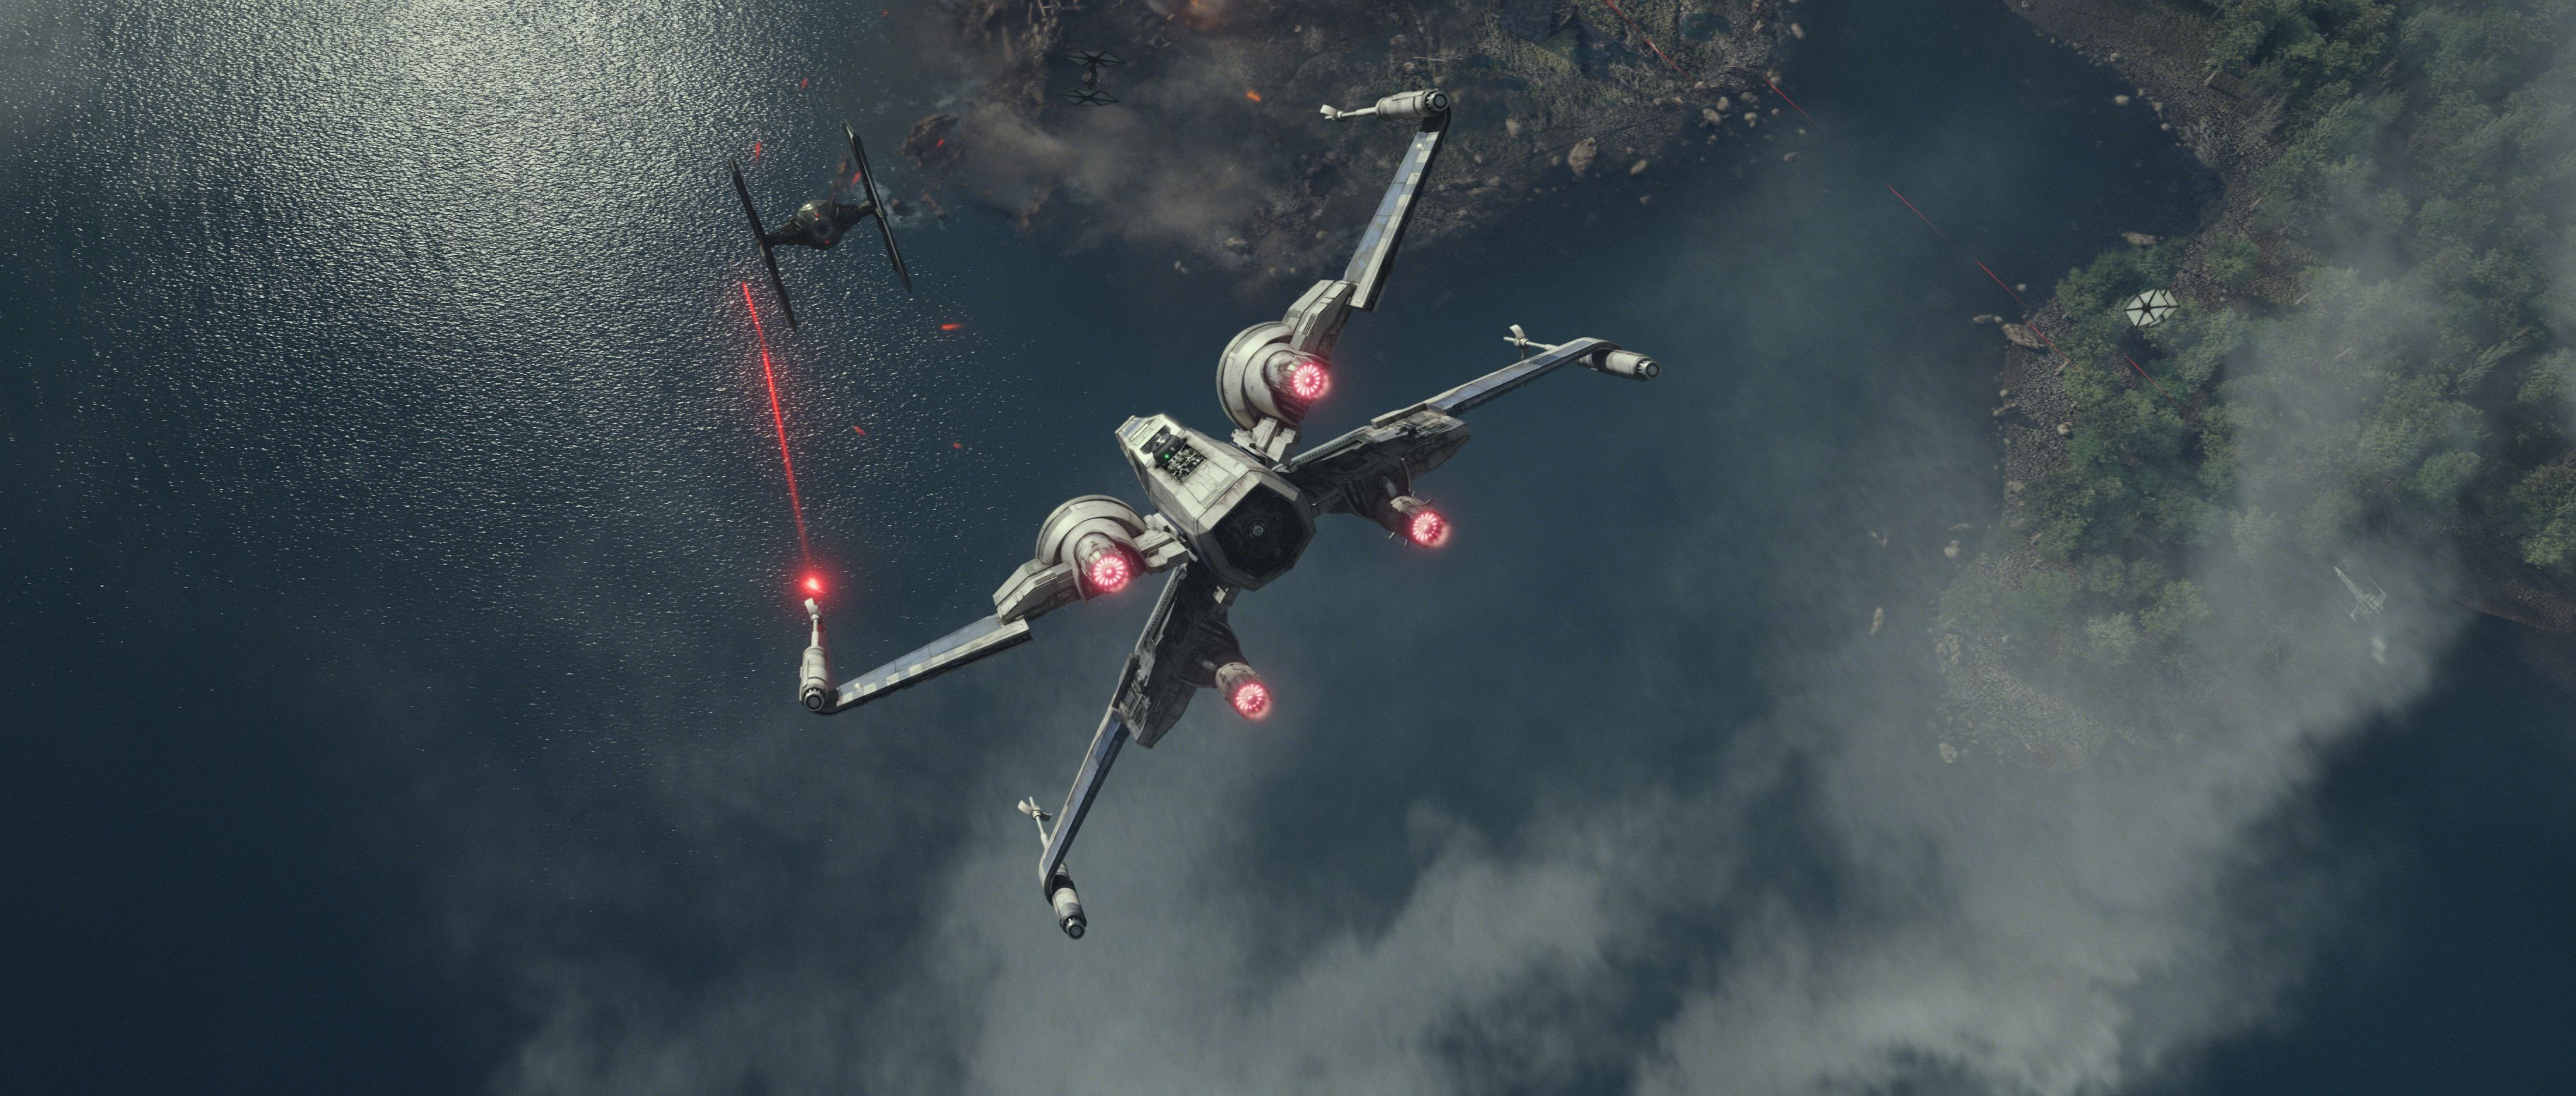 Grab a Star Wars The Force Awakens wallpaper with these new high res 3656x1556